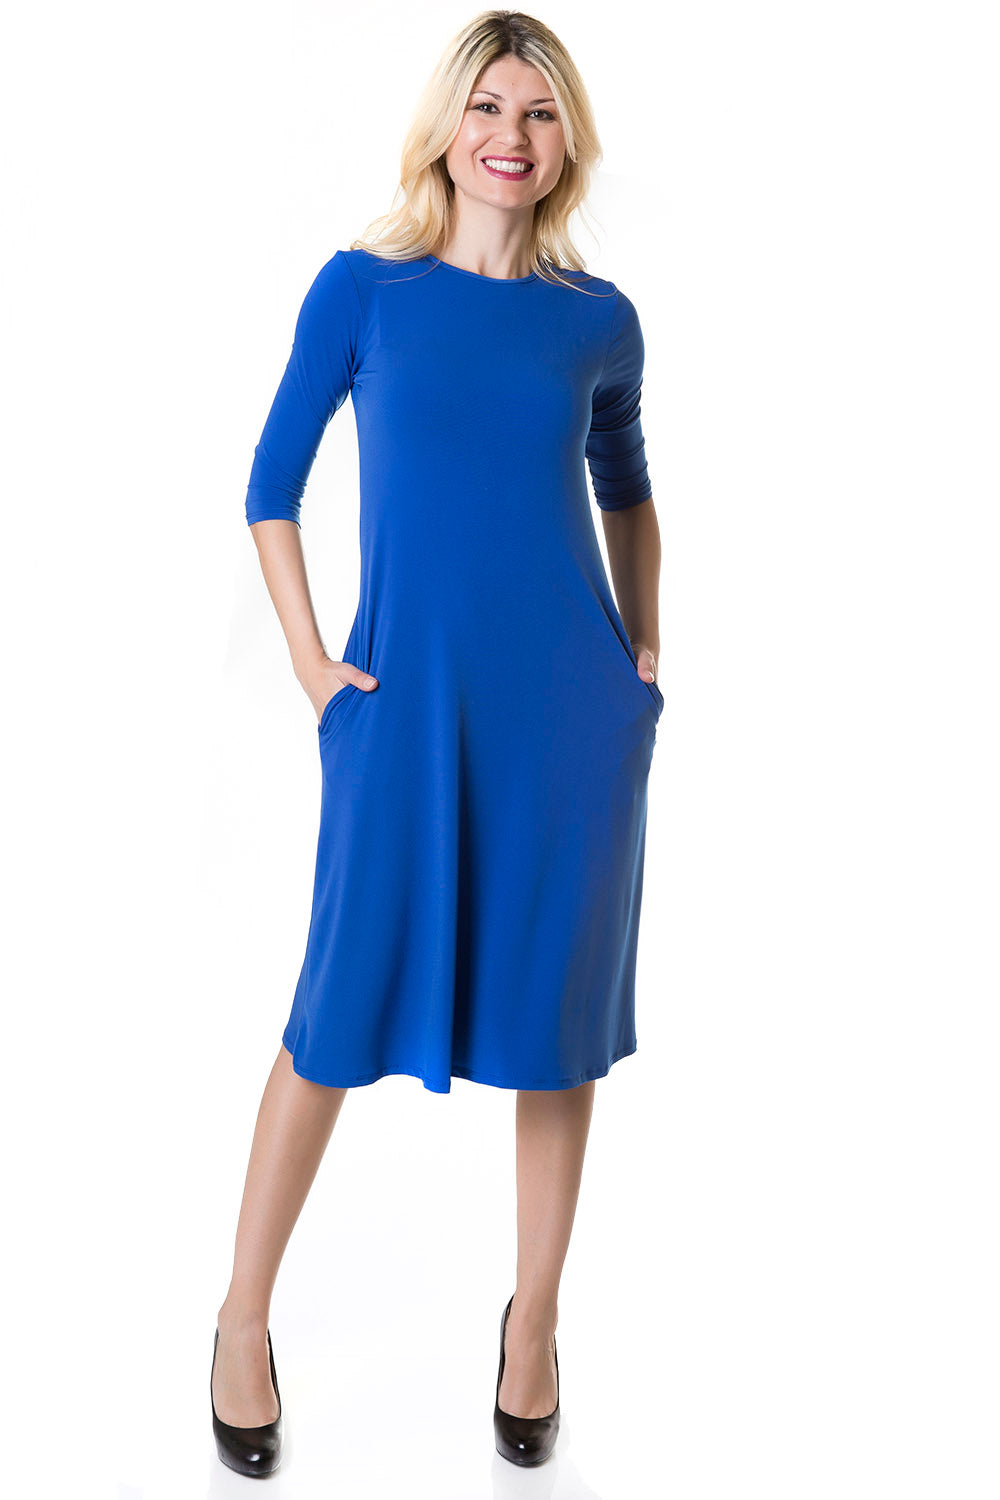 Esteez TAMMEE Dress - Womens Classic Fit - Flare Dress with pockets - COBALT - CLEARANCE